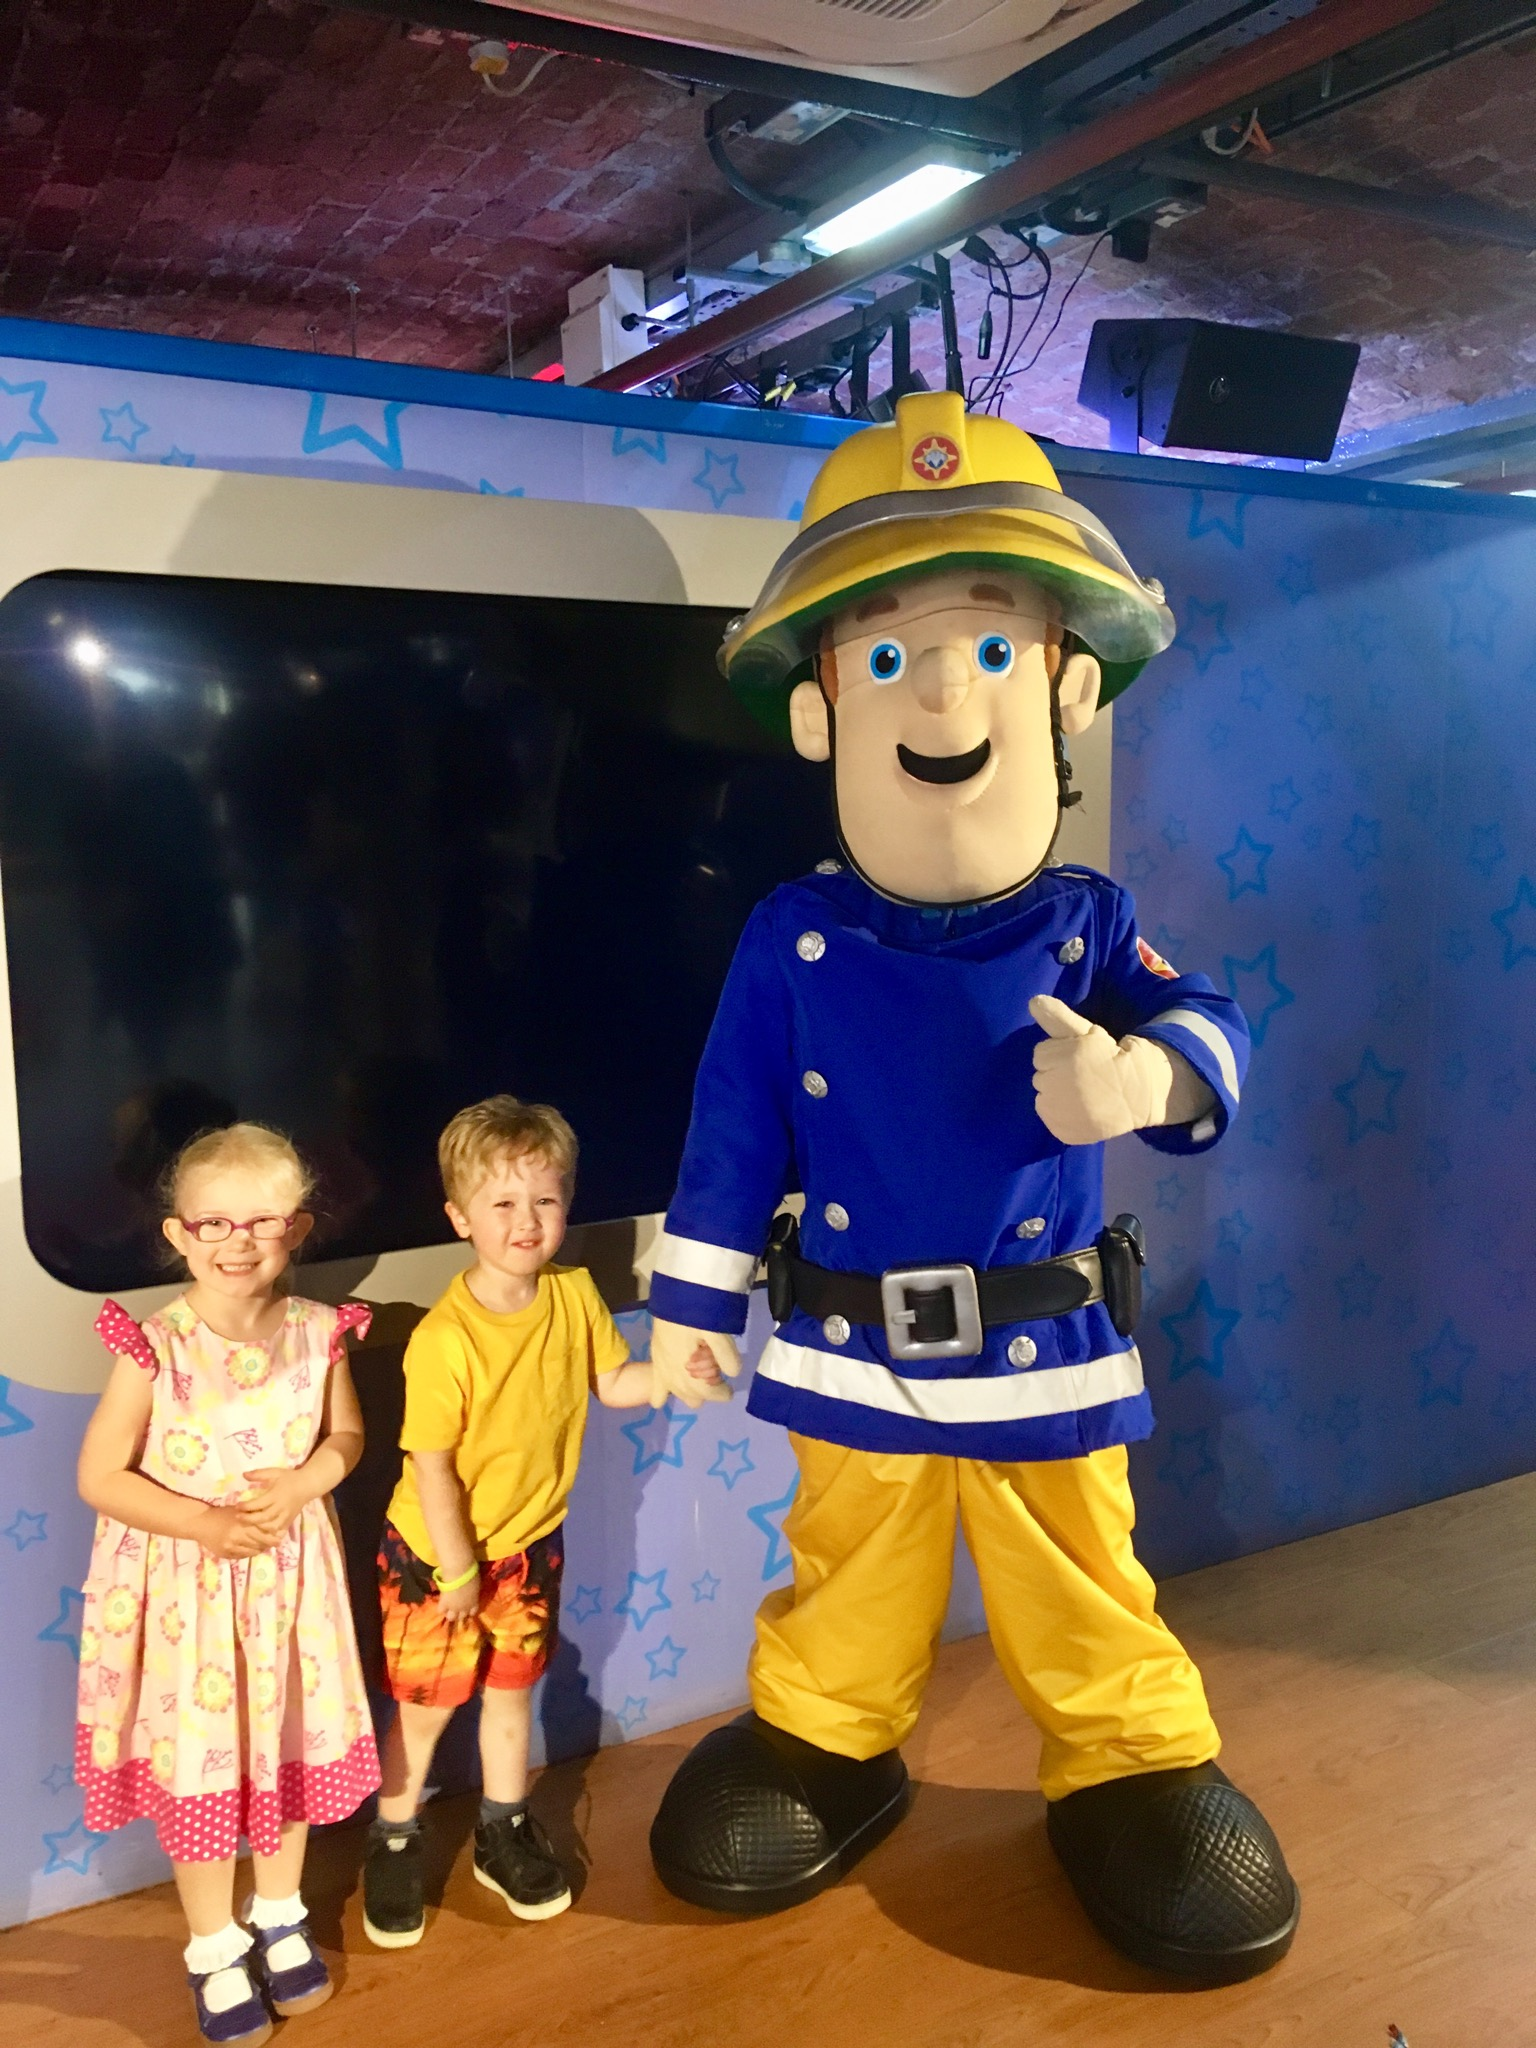 Lucas and Katie are stood next to fireman Sam